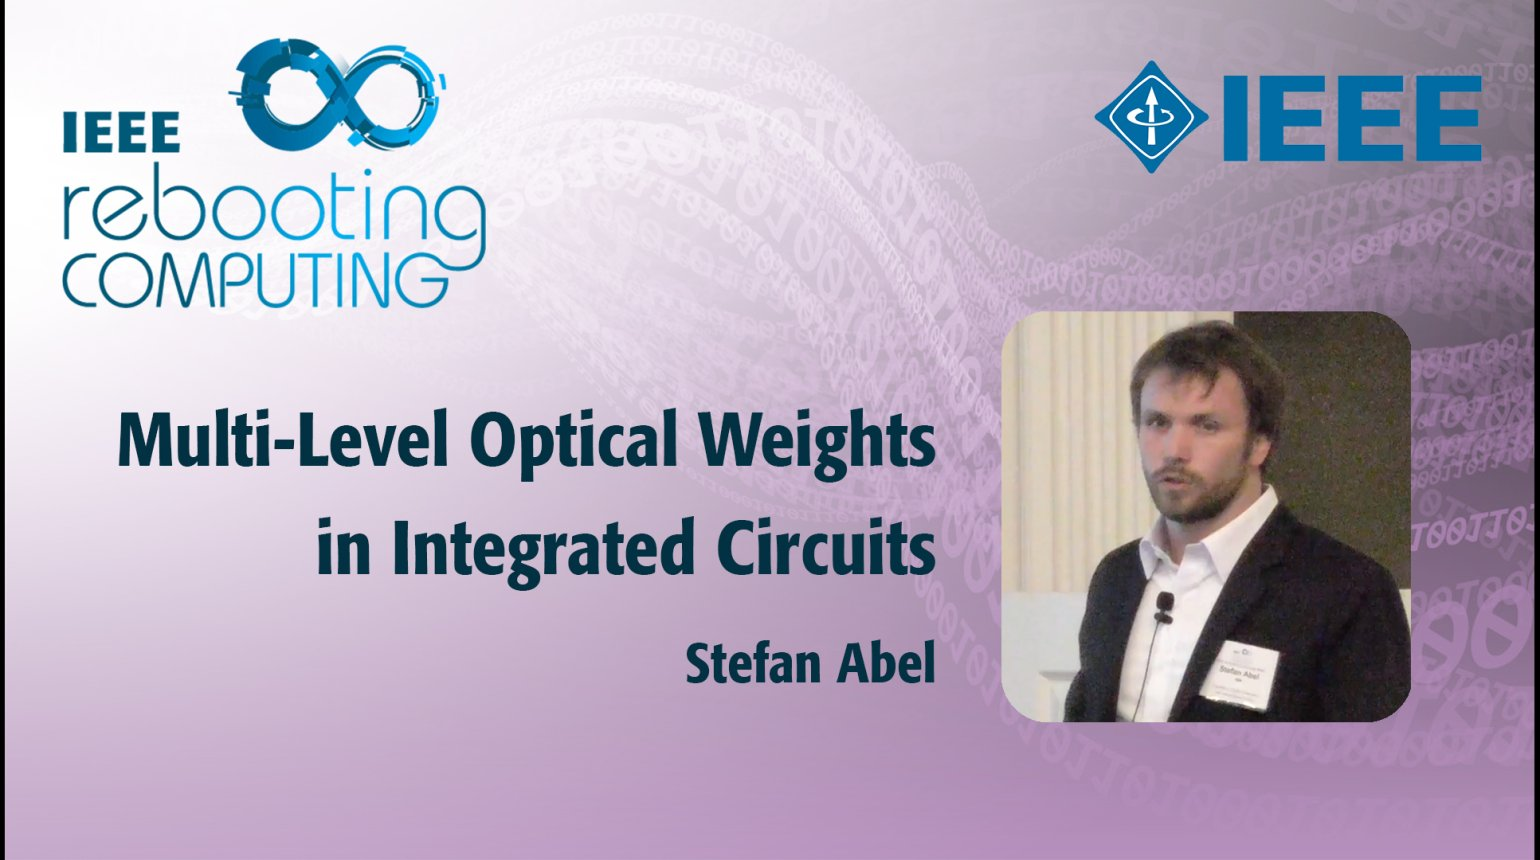 Multi-Level Optical Weights in Integrated Circuits - IEEE Rebooting Computing 2017